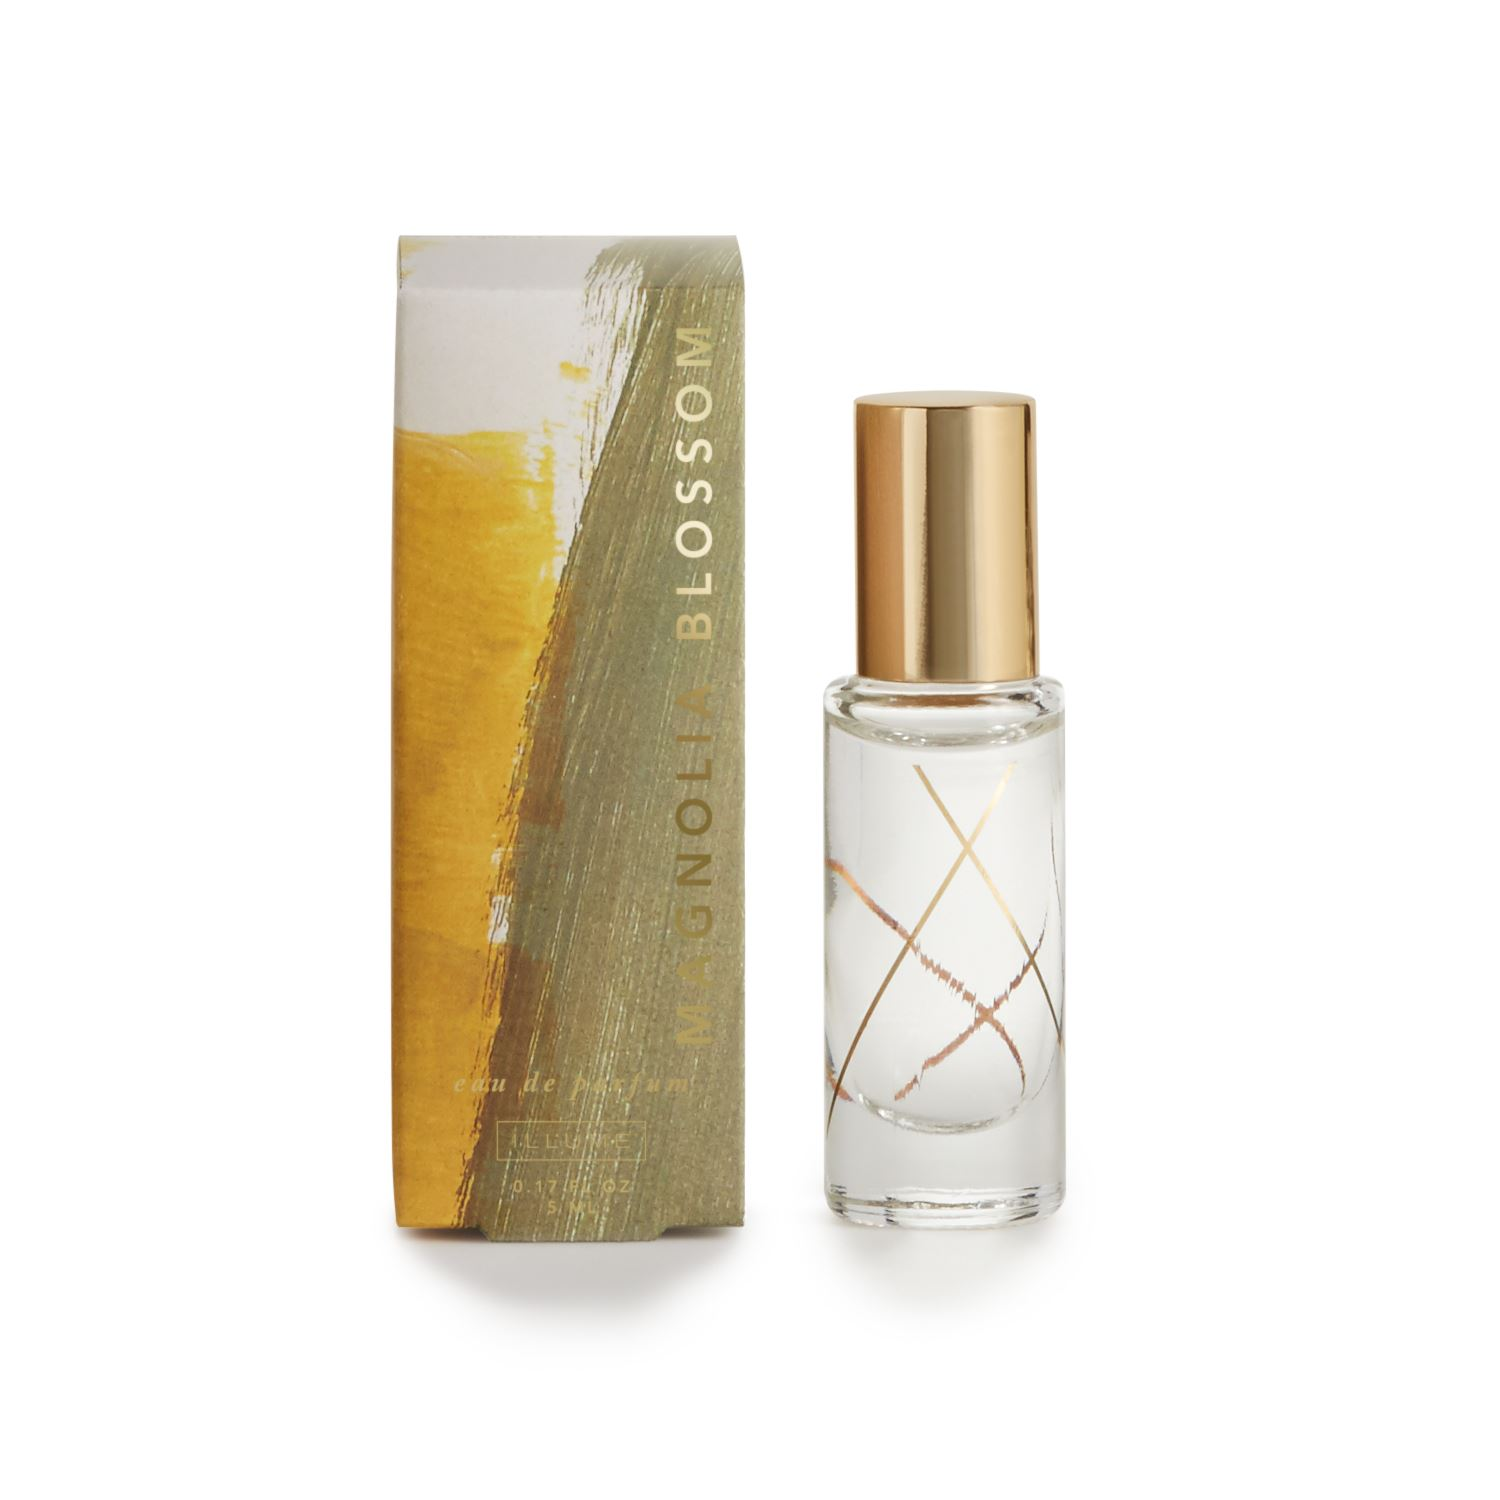 Assorted illume NARRATIVE Collection Rollerball PERFUME